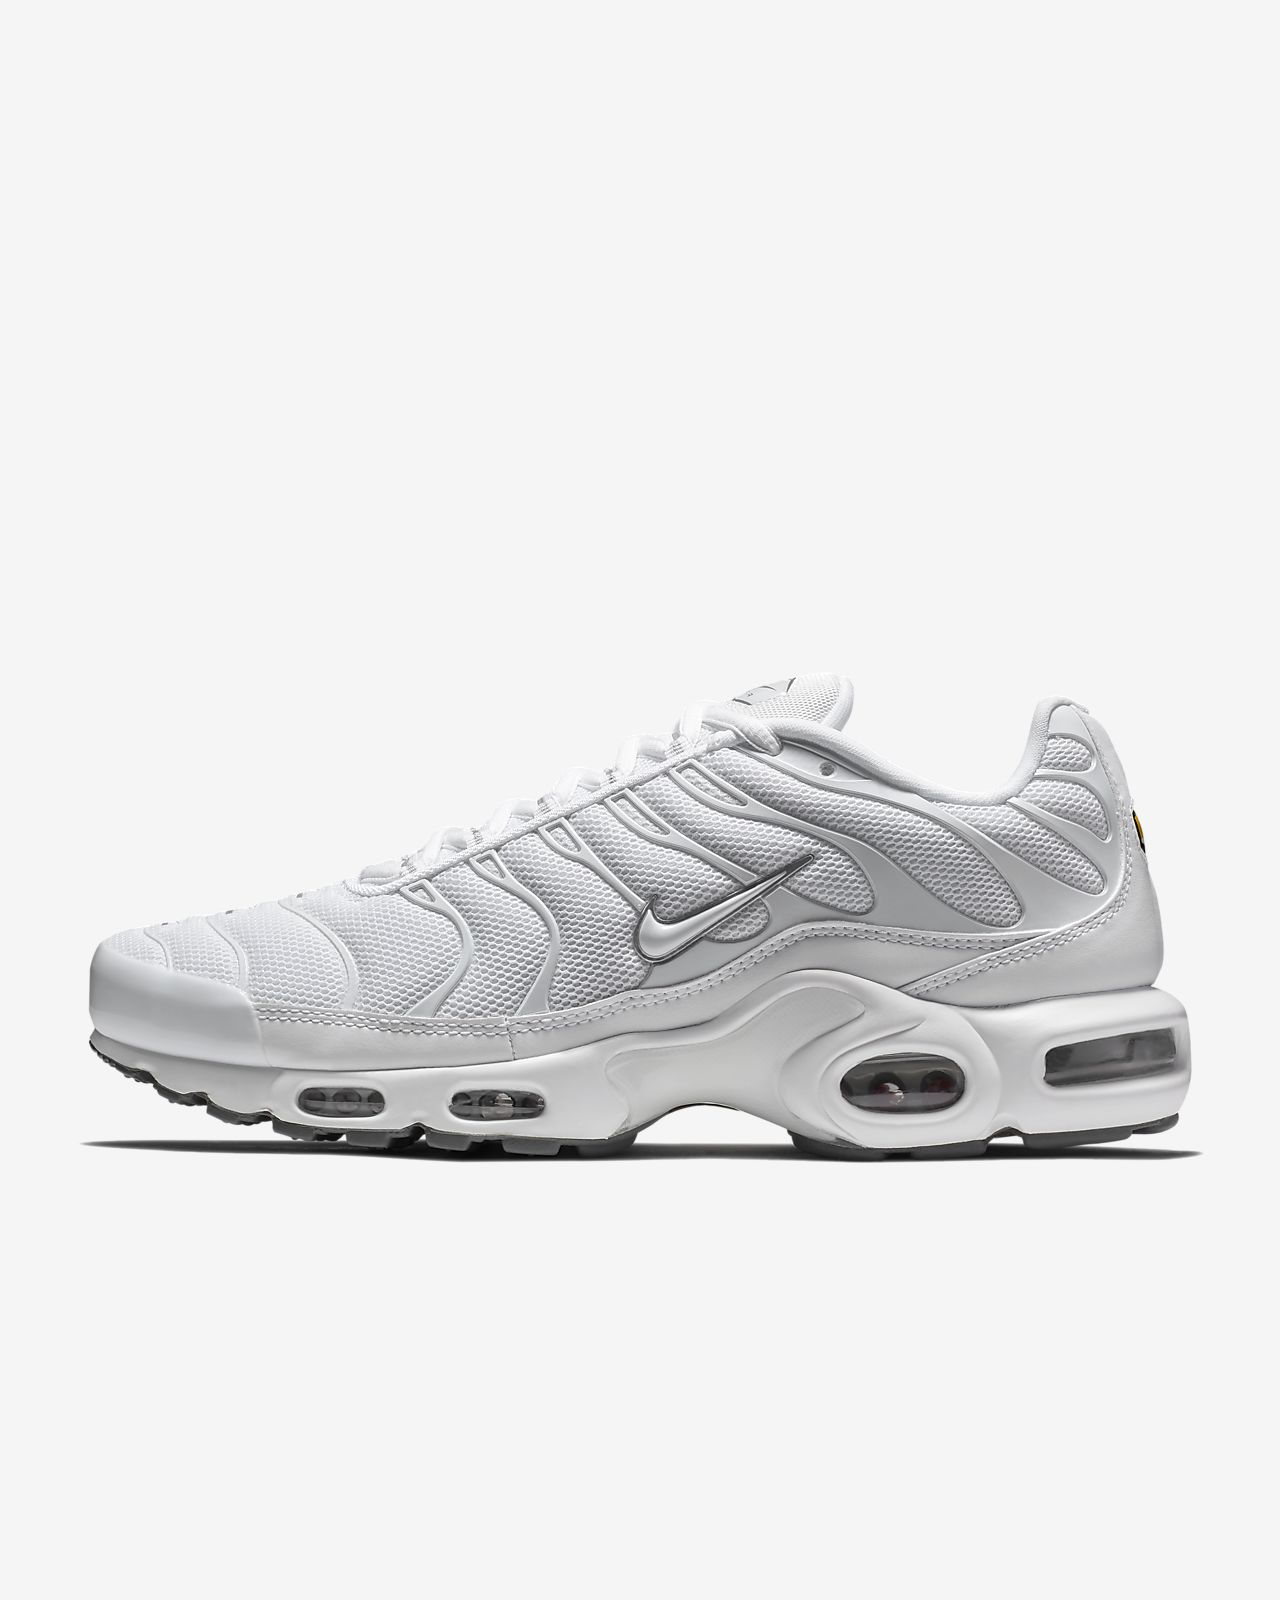 4ef50bb9f3c Nike Air Max Plus Men s Shoe. Nike.com FI